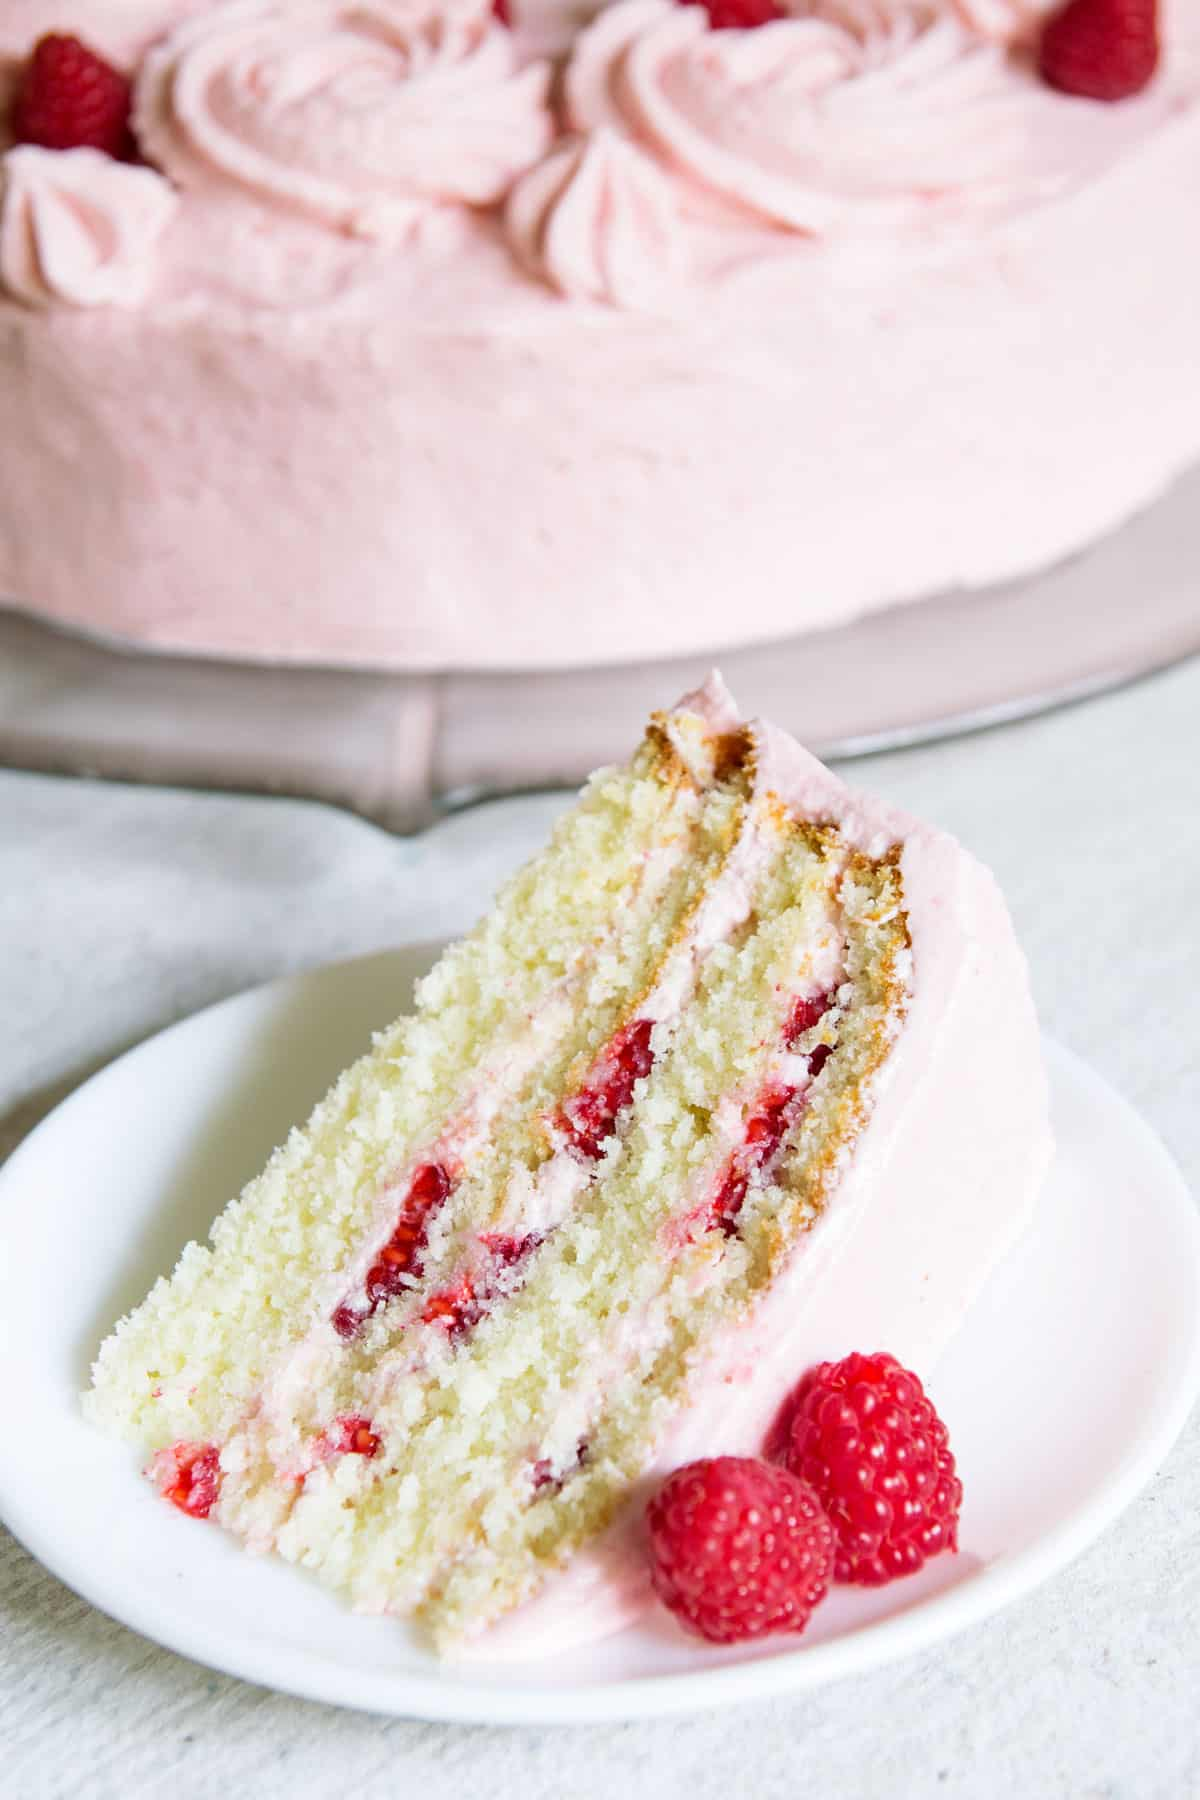 Slice of Raspberry Layer cake on a plate